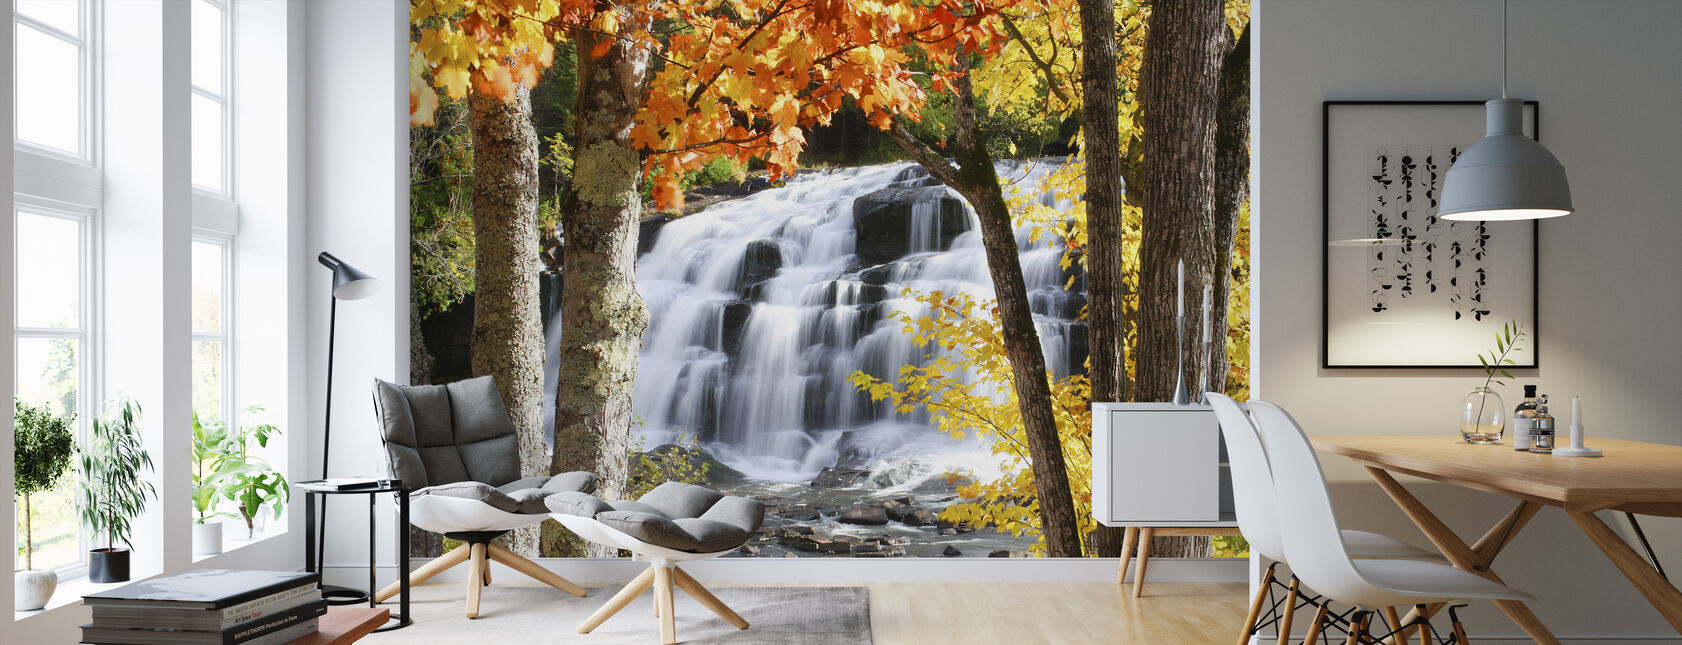 Bond Falls dressed in Autumn colors - Wallpaper - Living Room